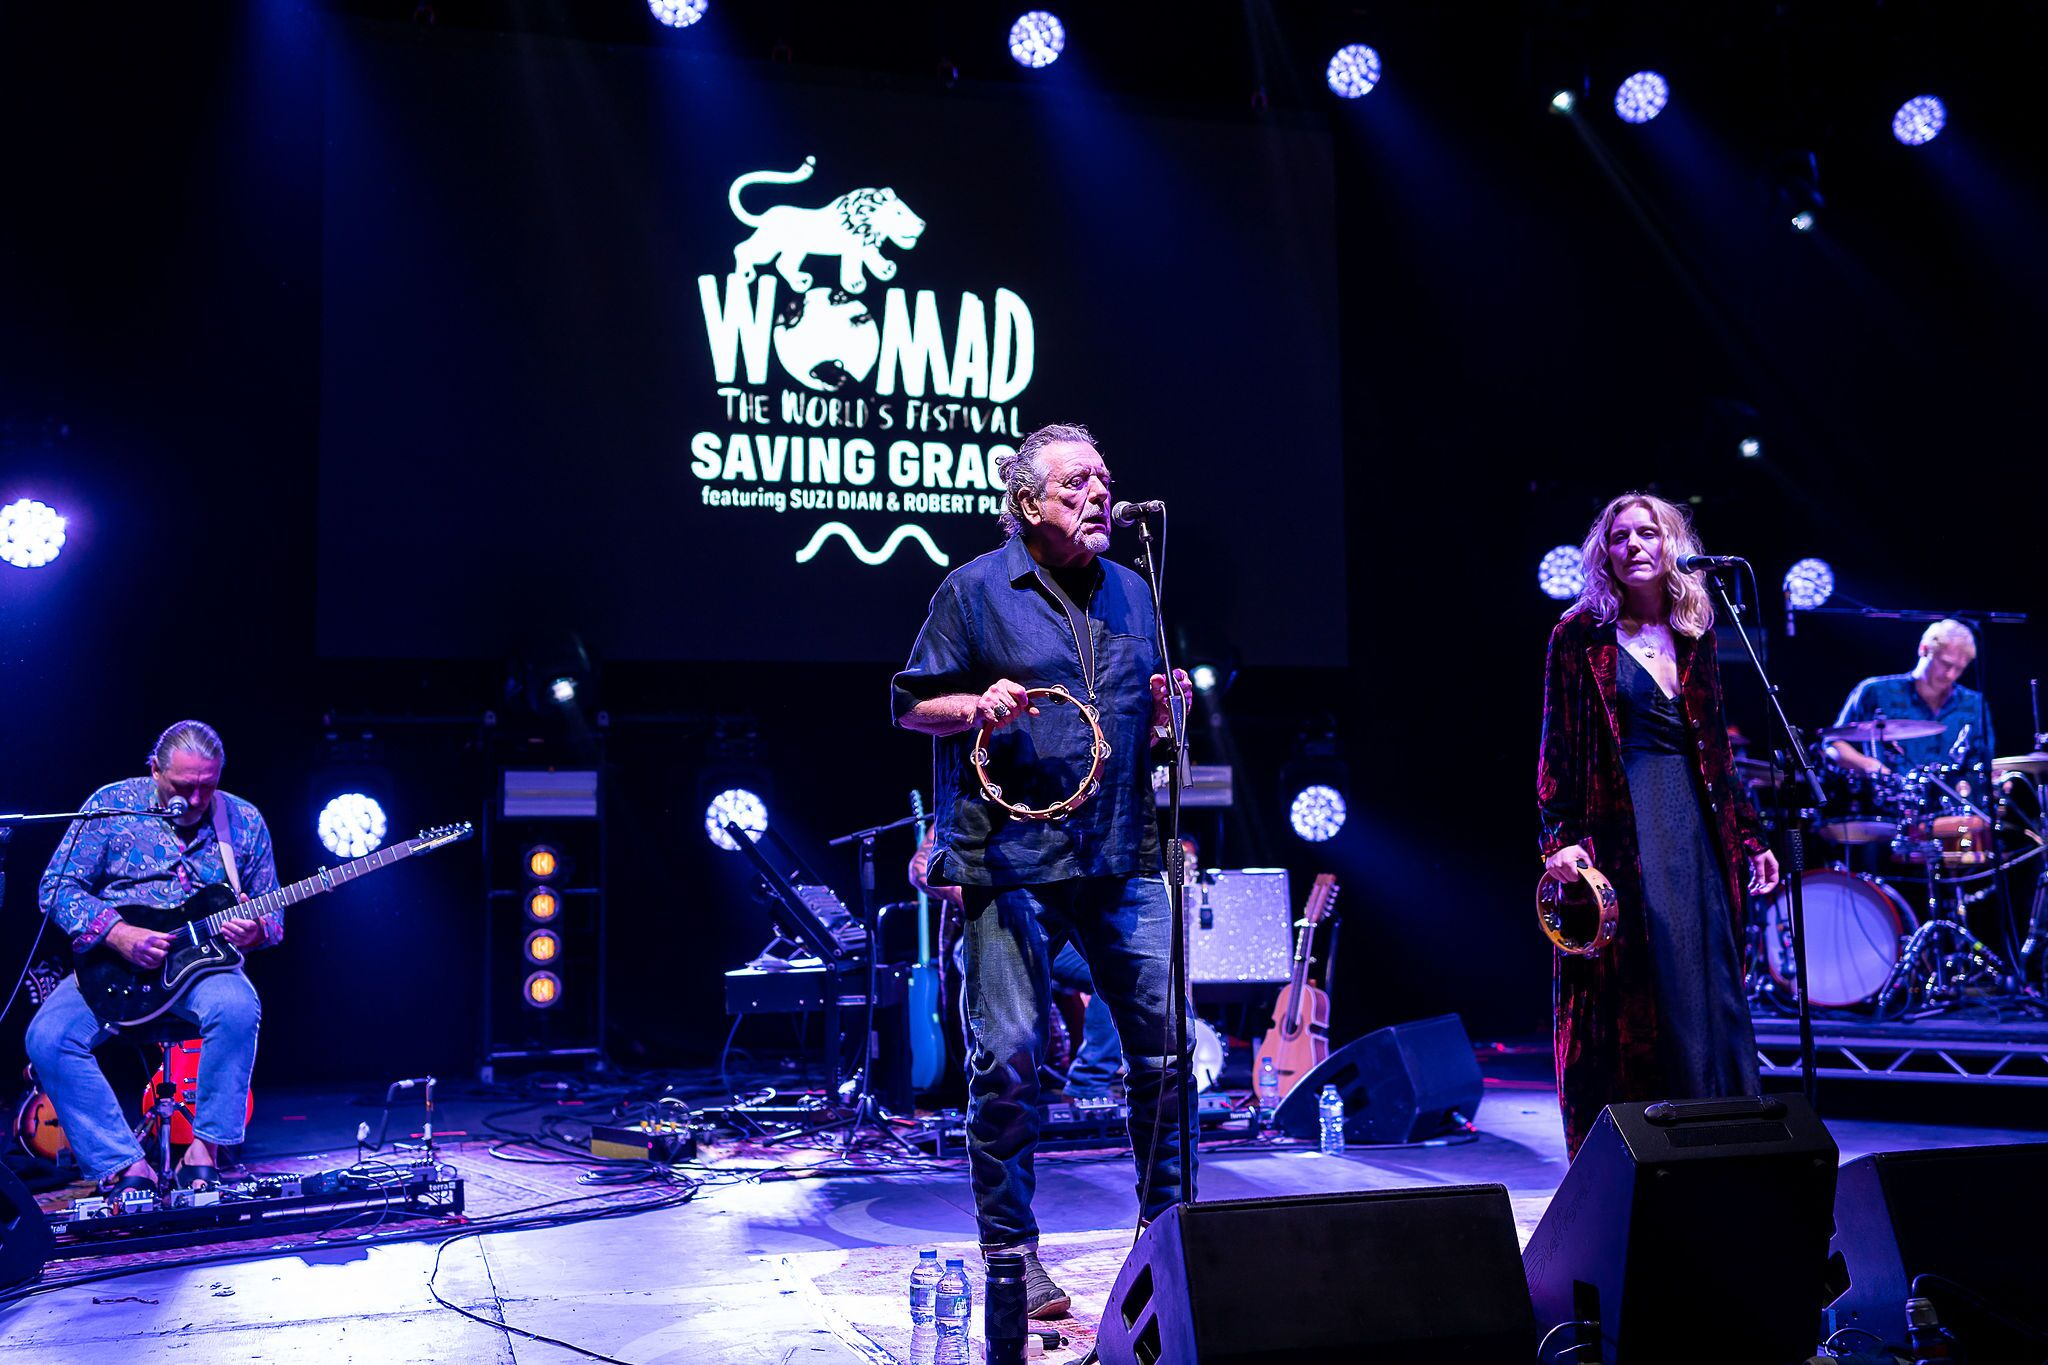 Robert Plant's Saving Grace at WOMAD